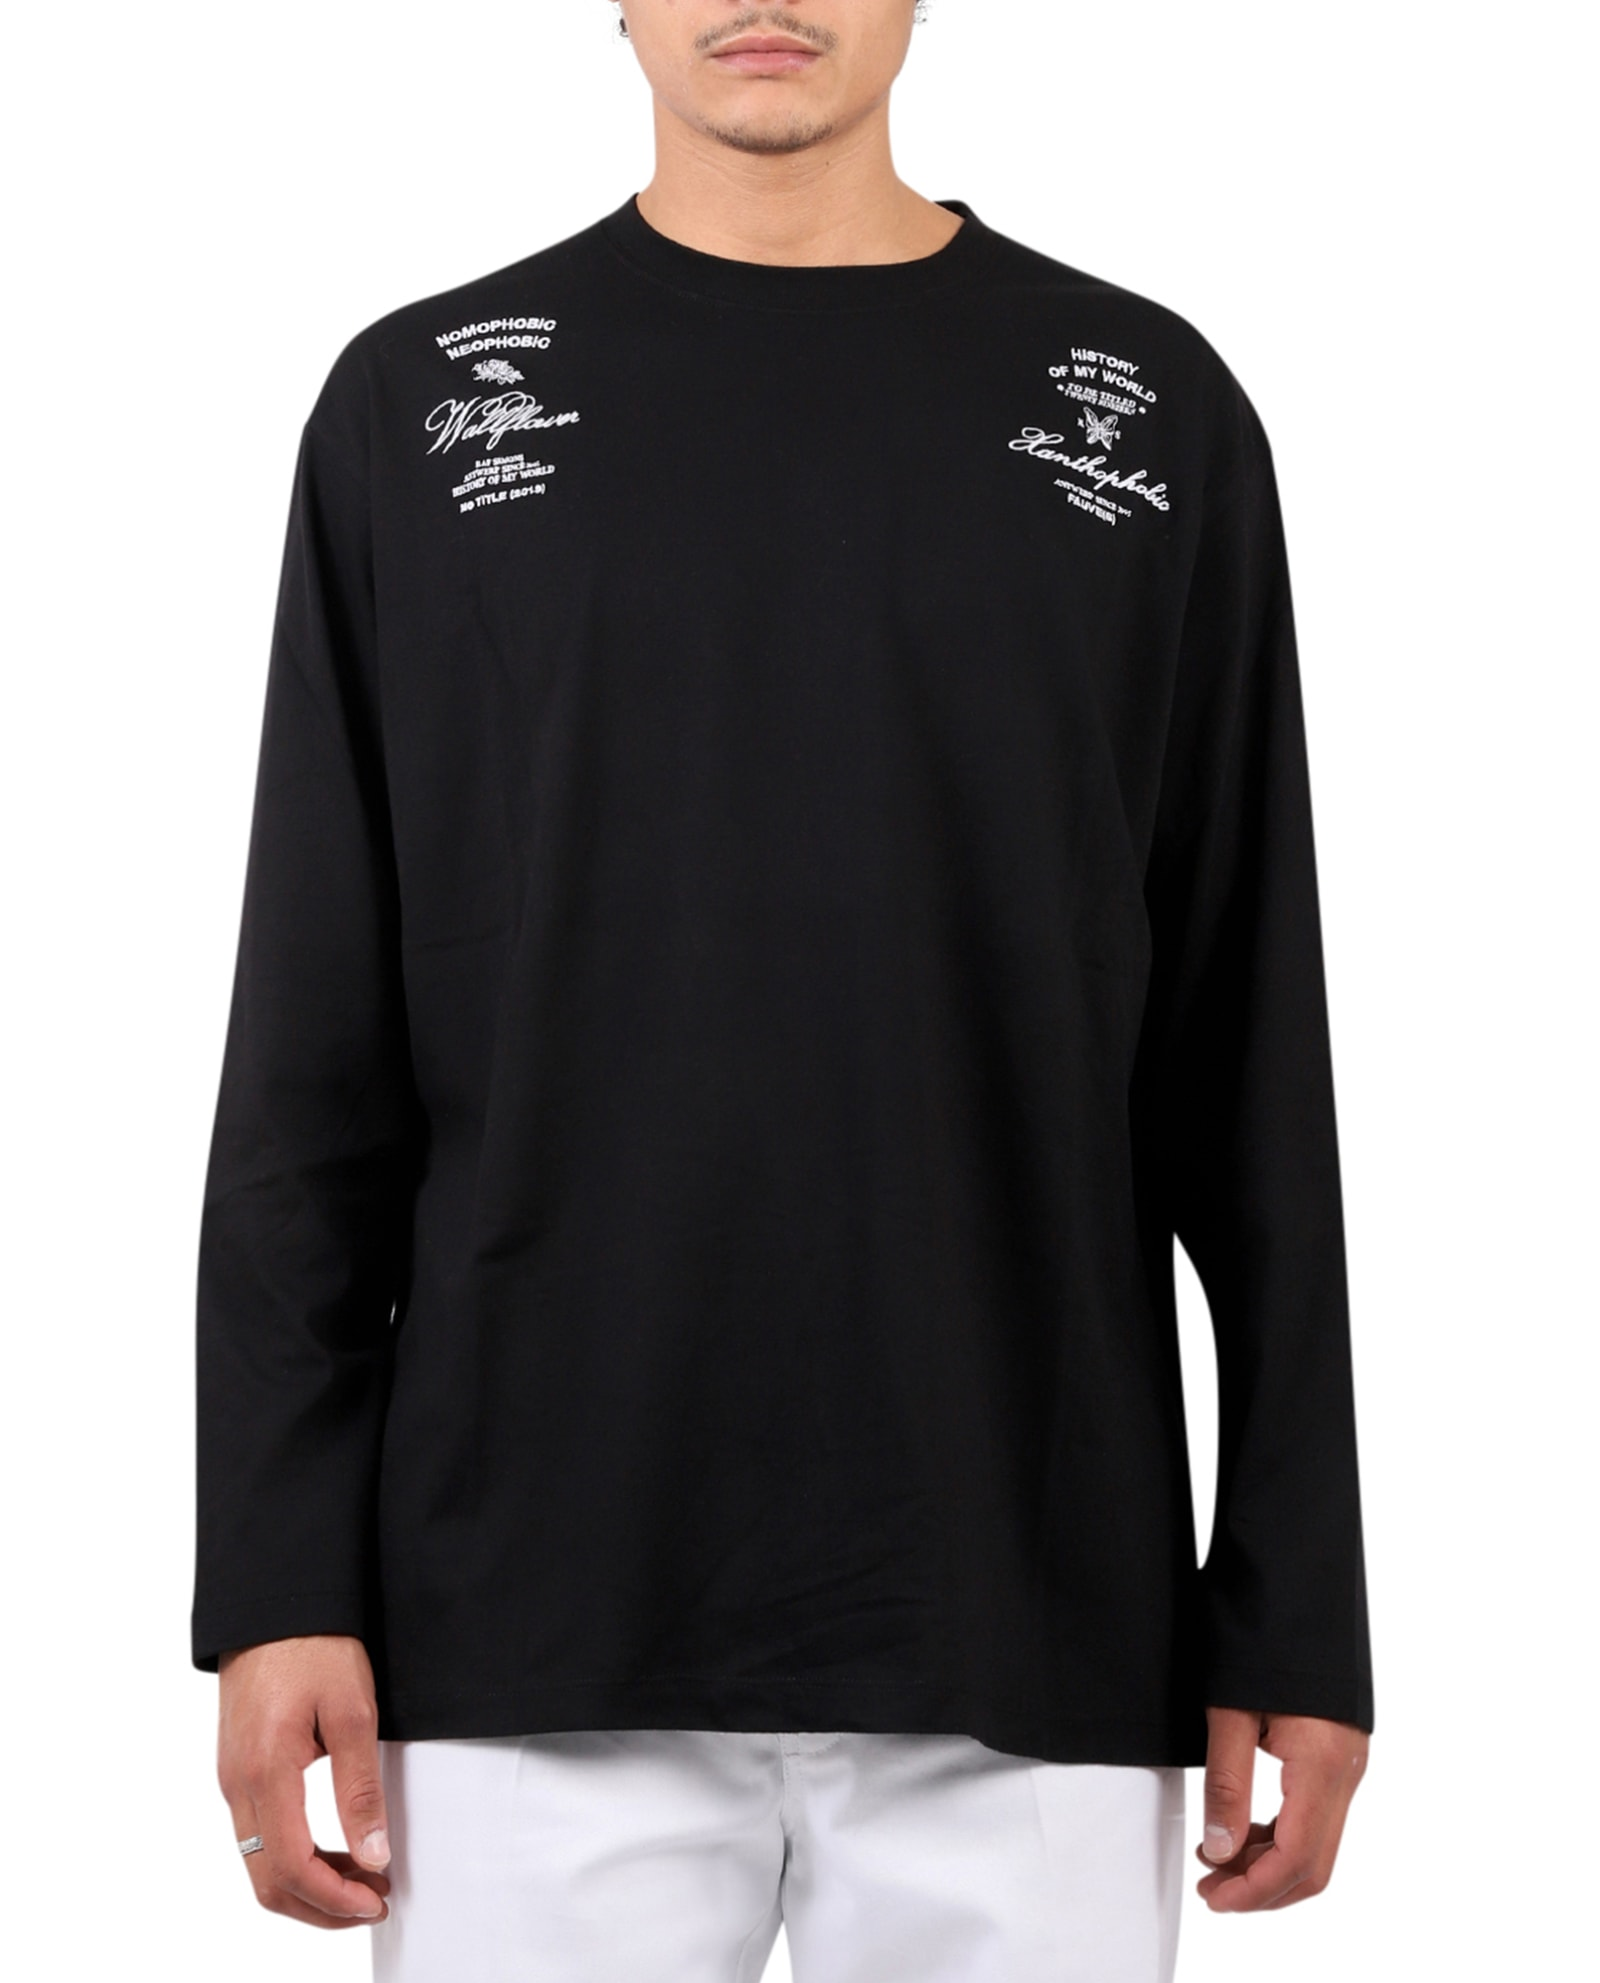 Raf Simons Tops BLACK LS T-SHIRT